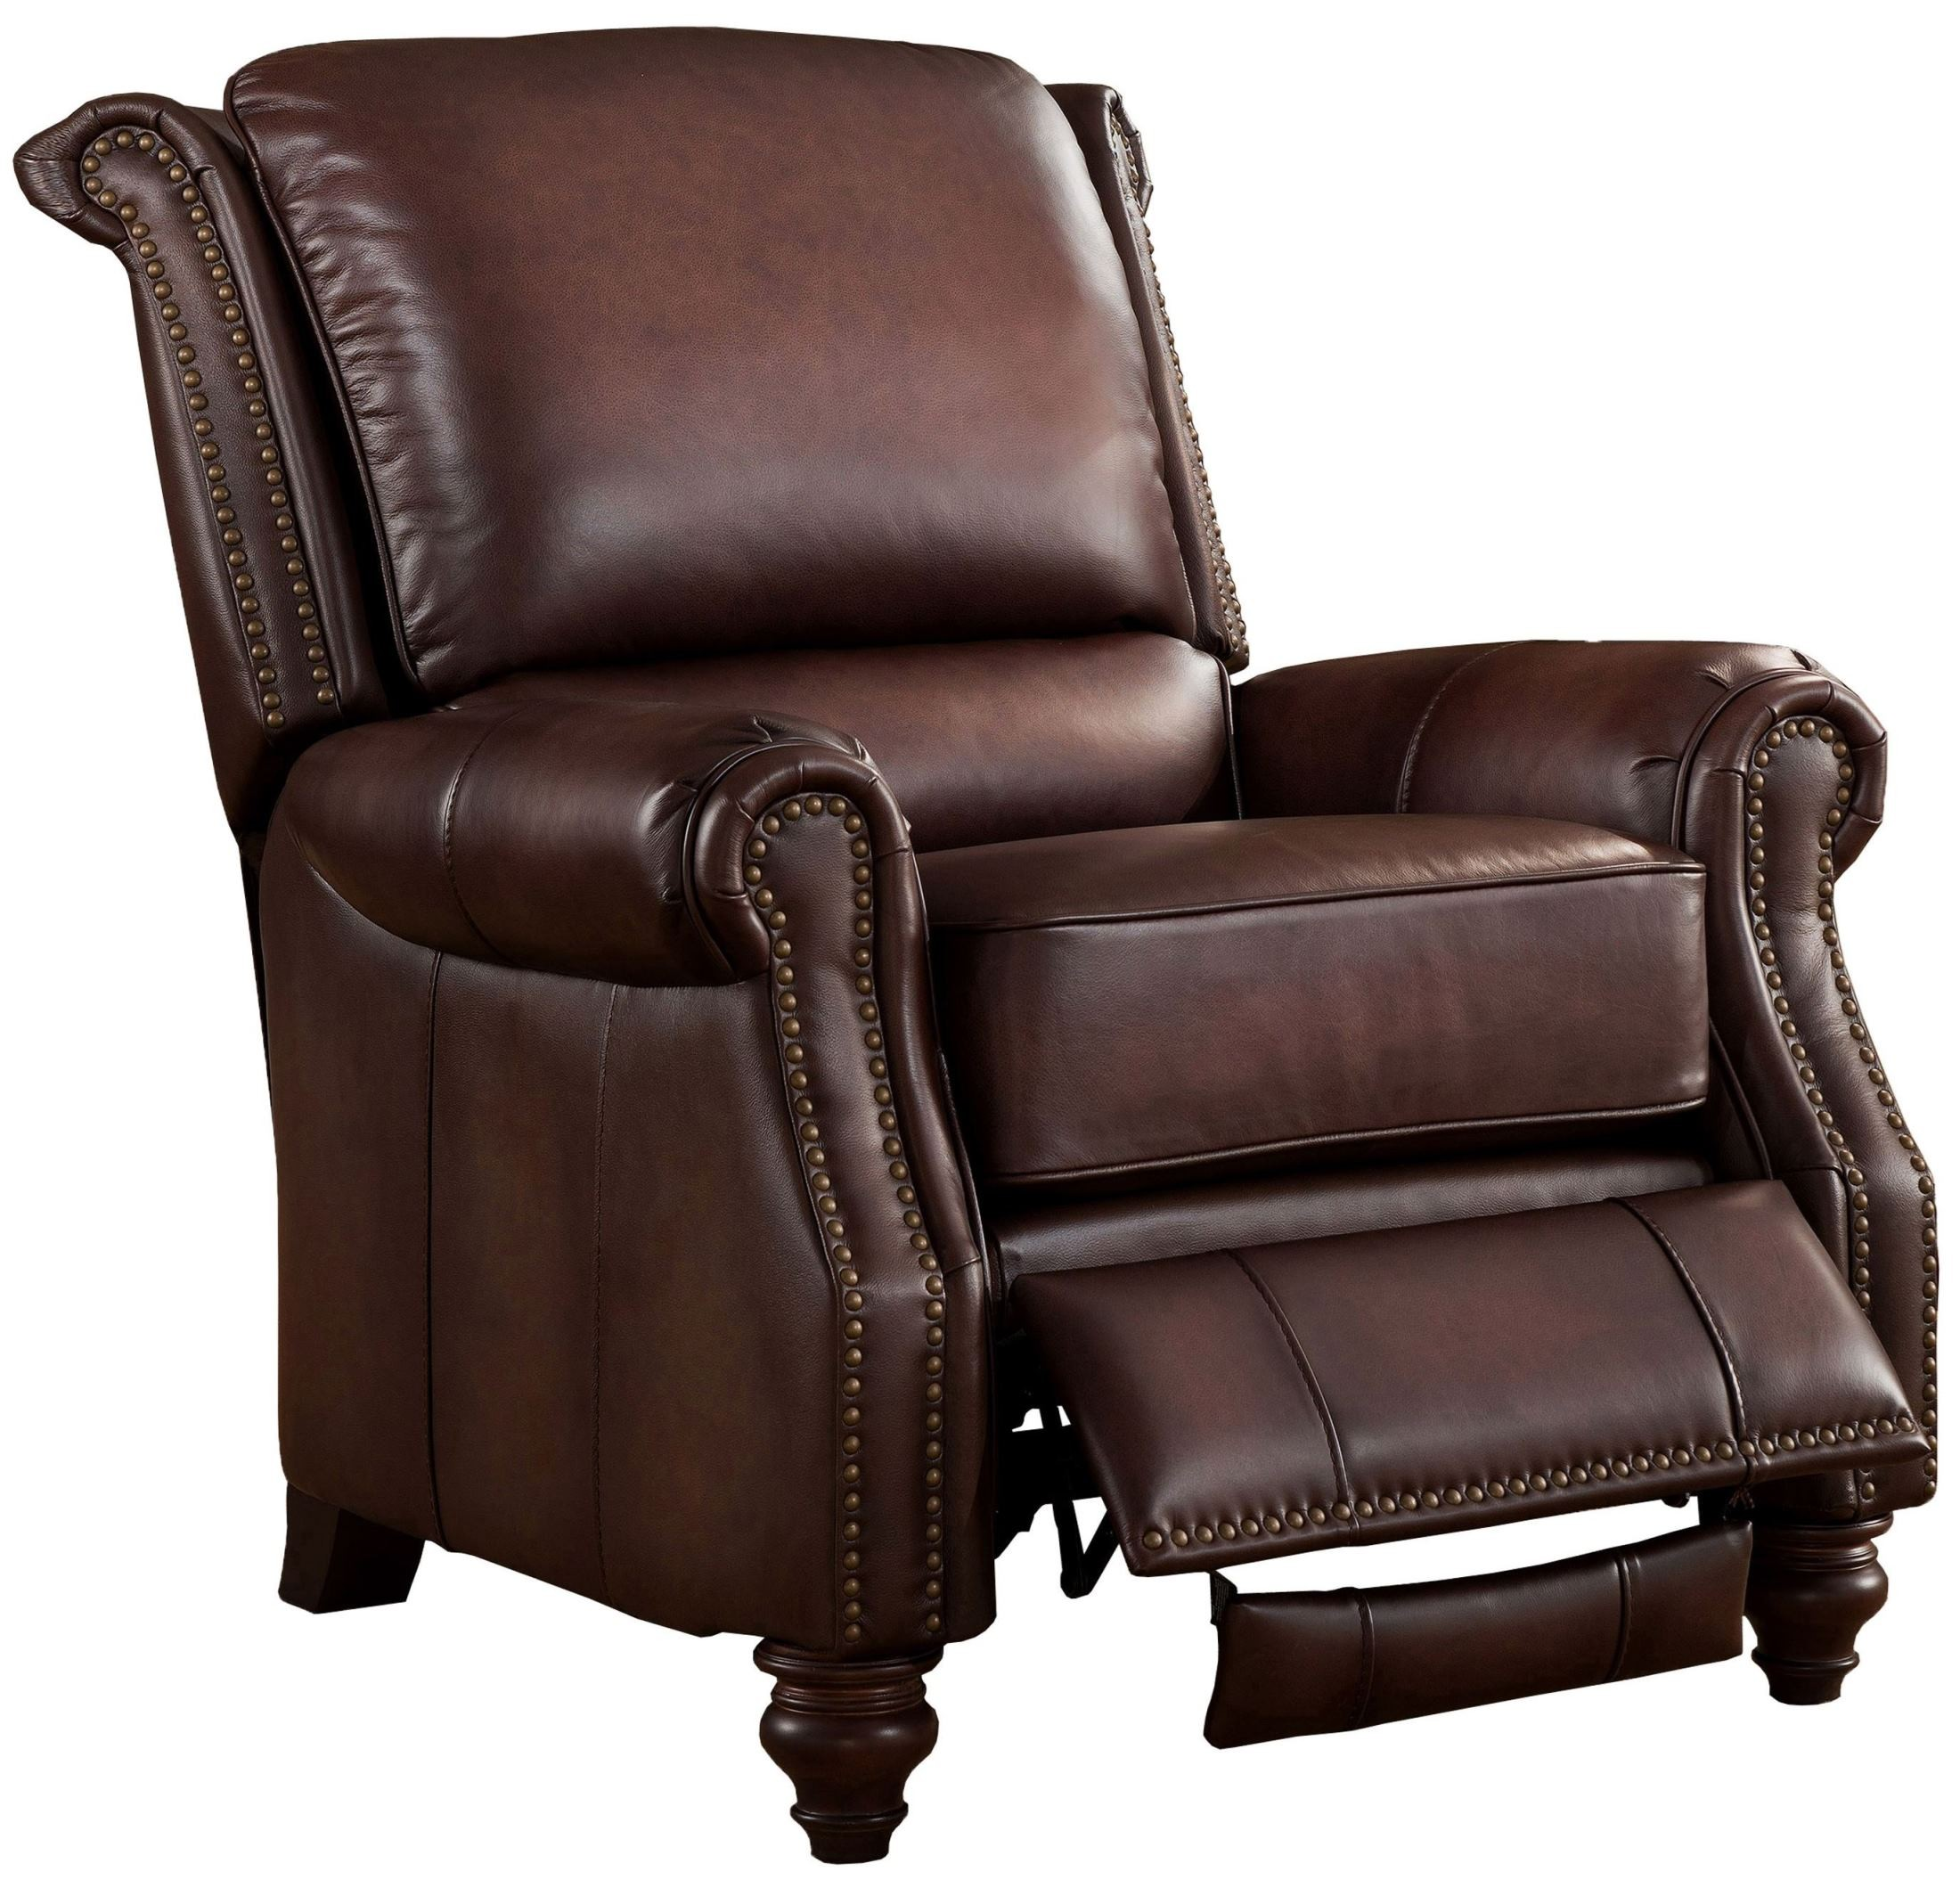 Churchill Brown Leather Recliner Chair From Amax Leather